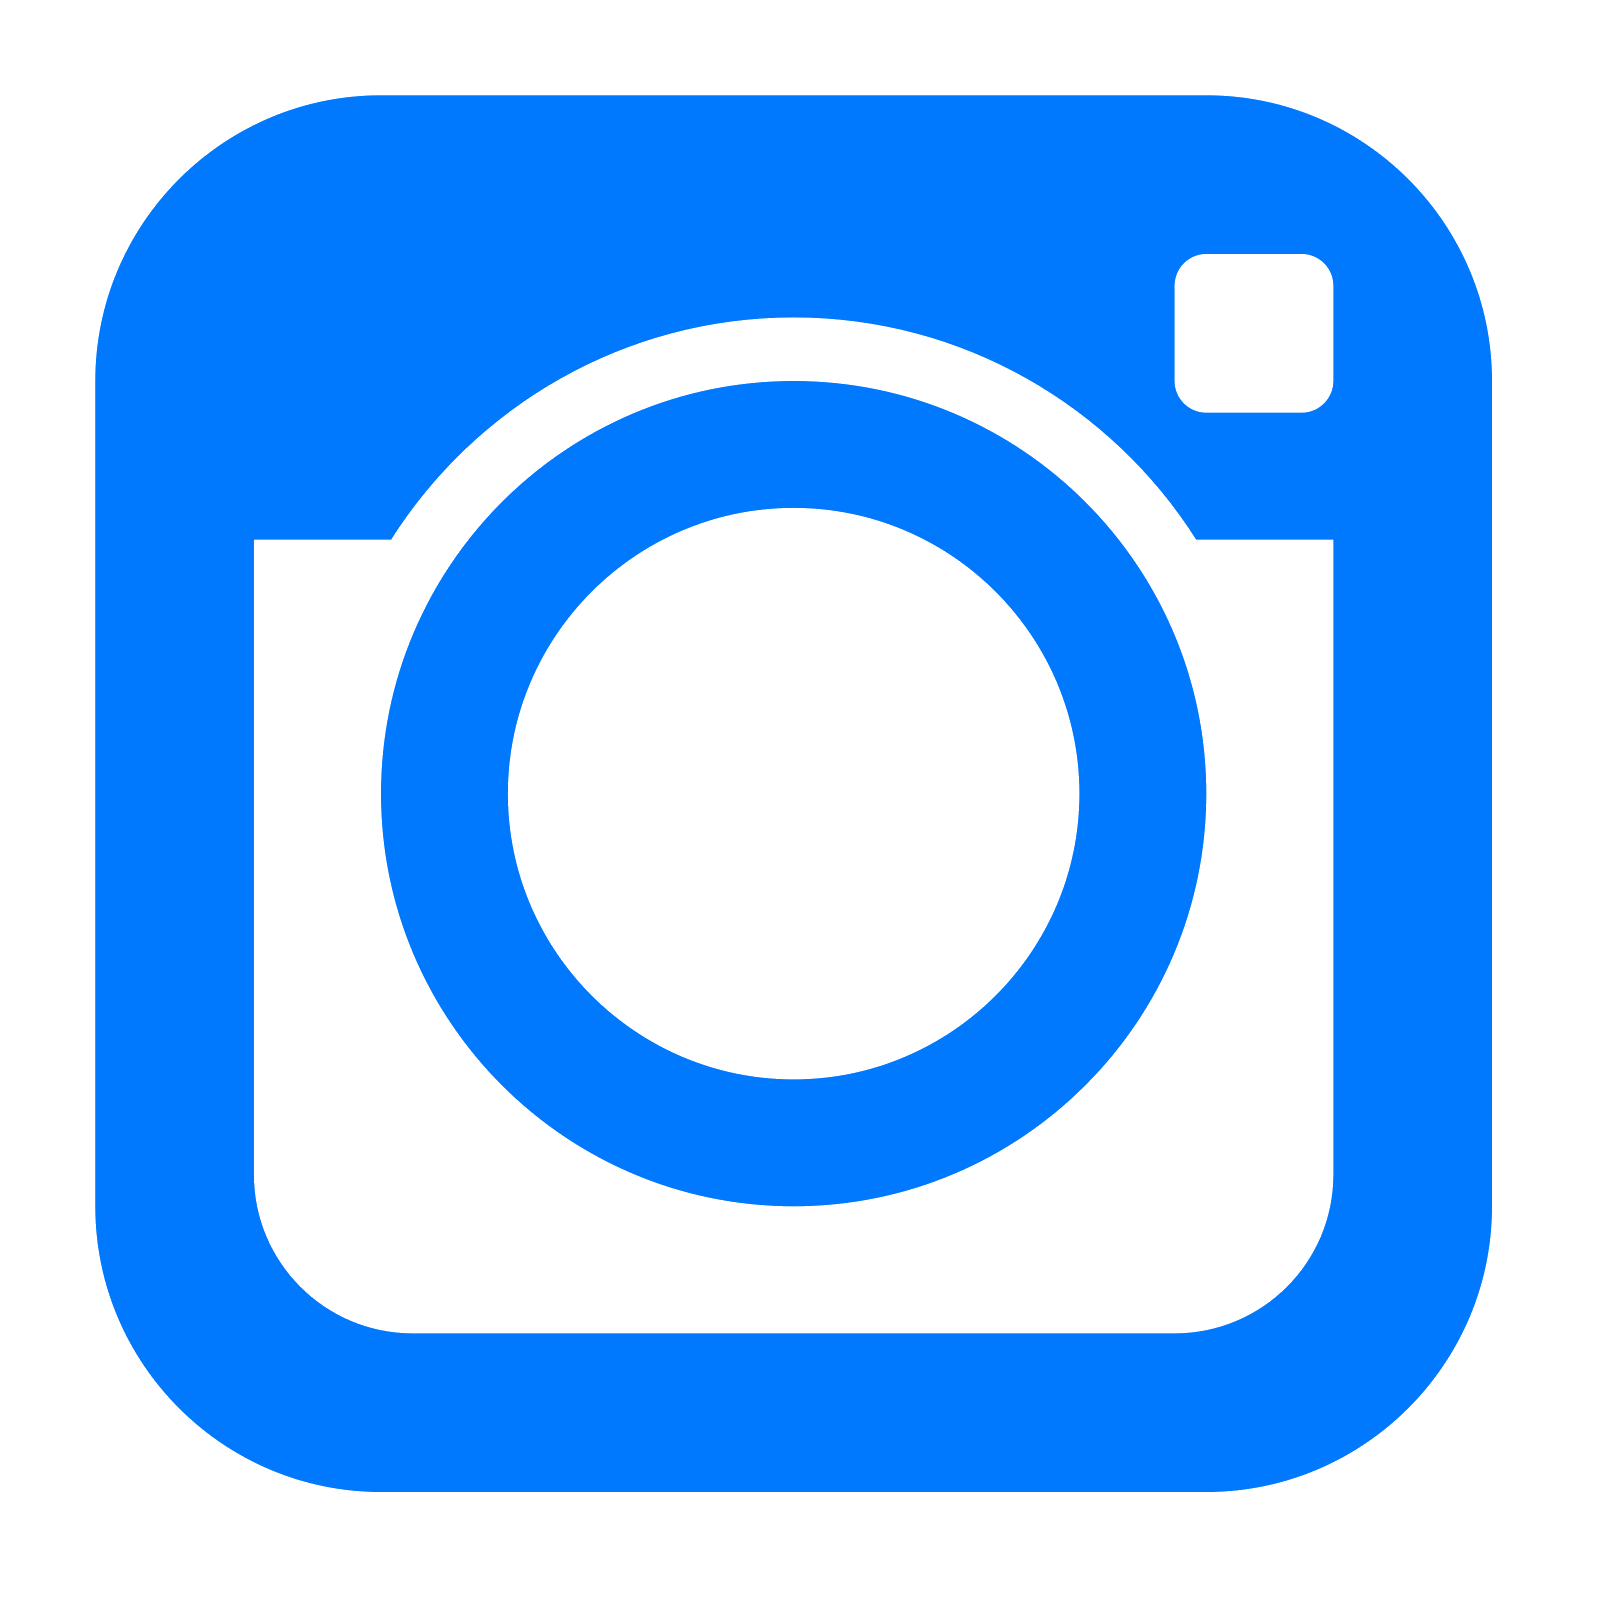 Download Computer Instagram Icons PNG File HD ICON free